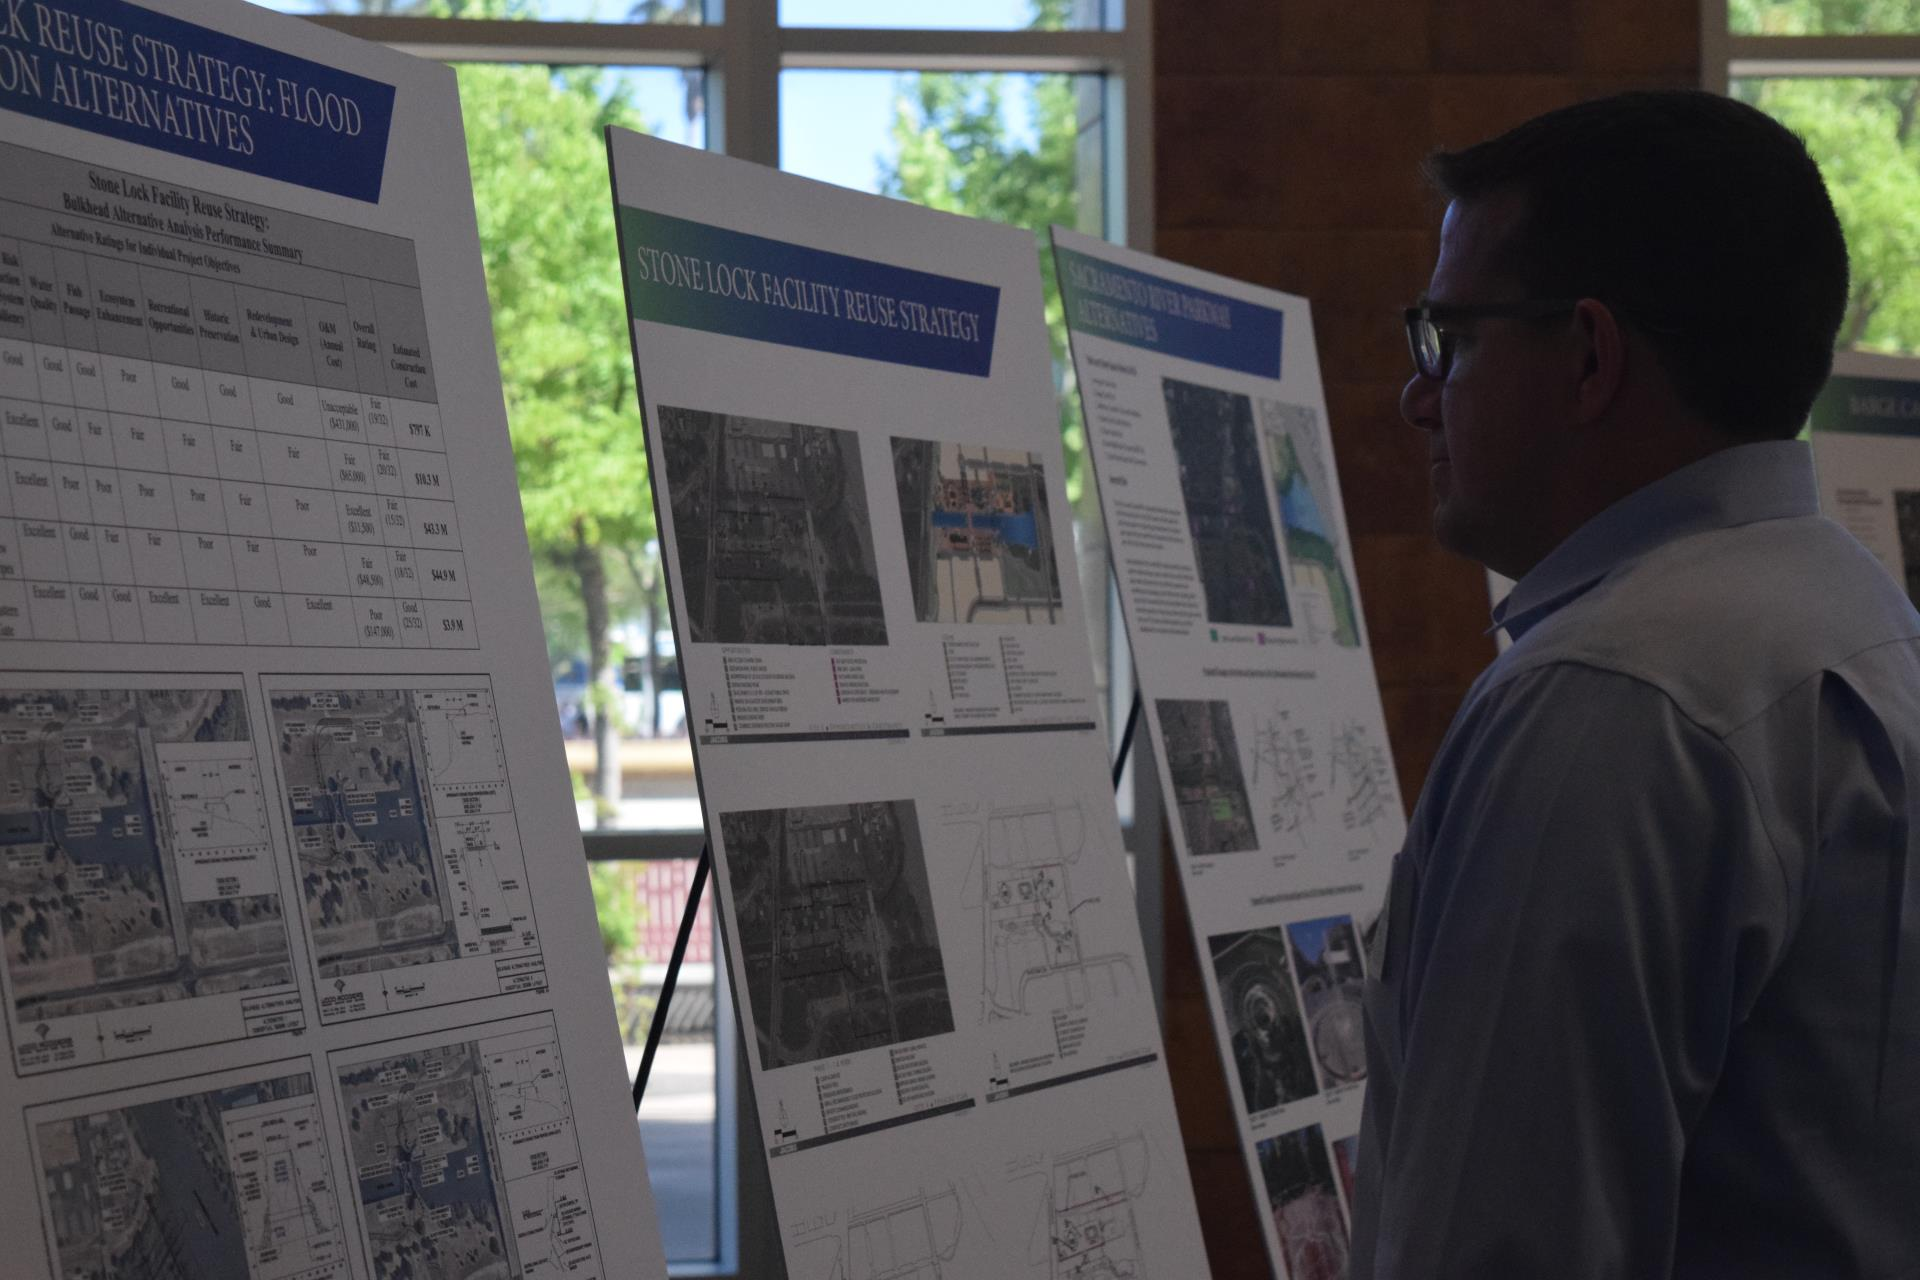 pioneer bluff open house resident reads display boards